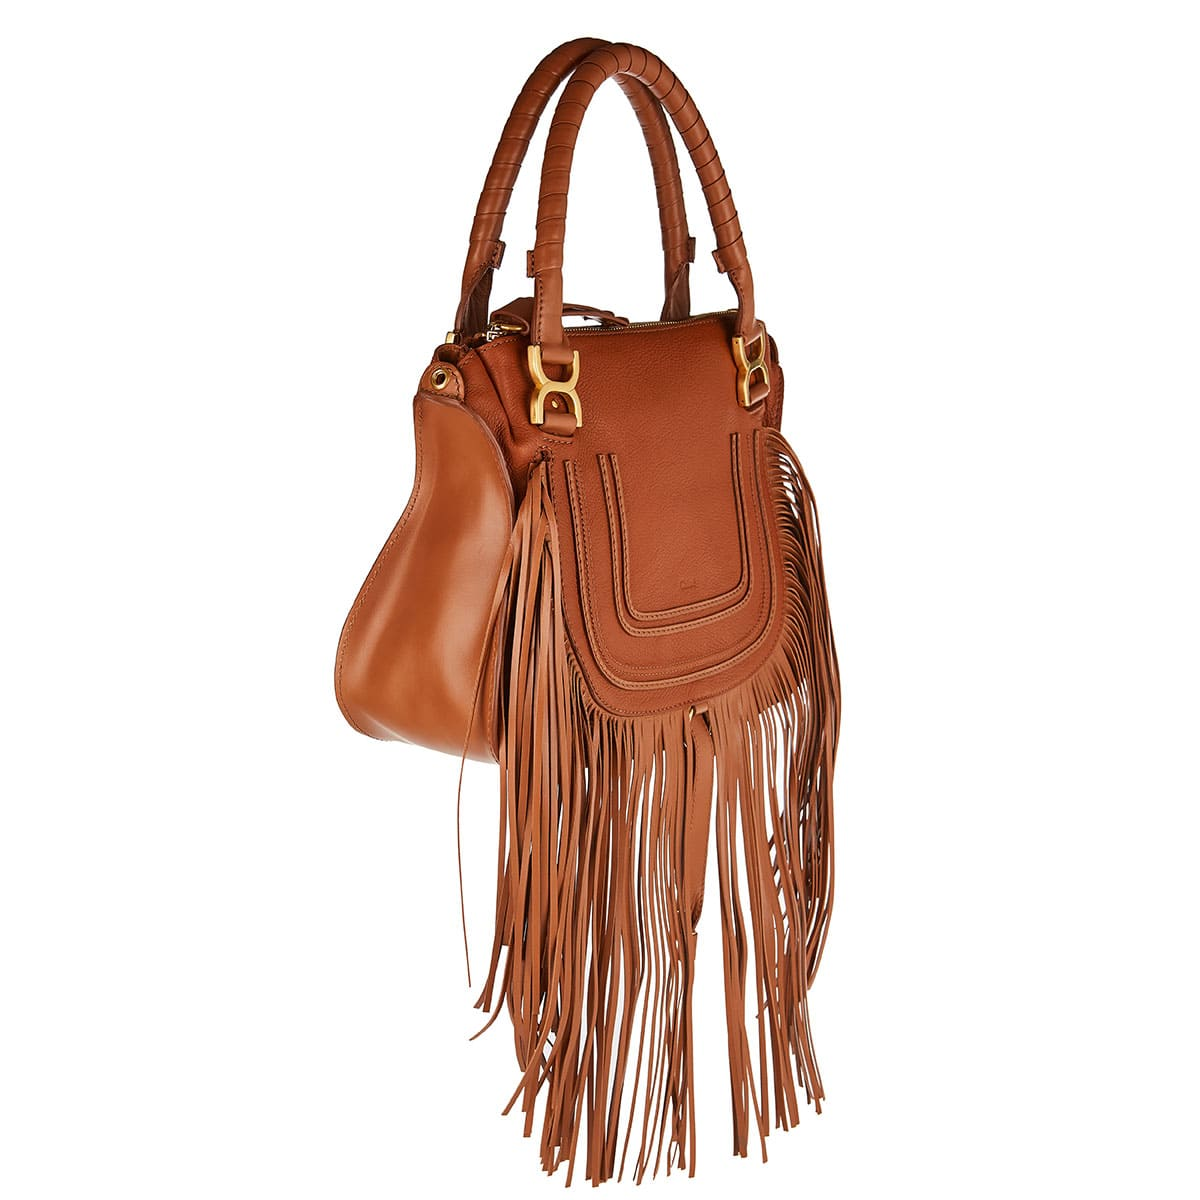 Marcie fringed leather bag